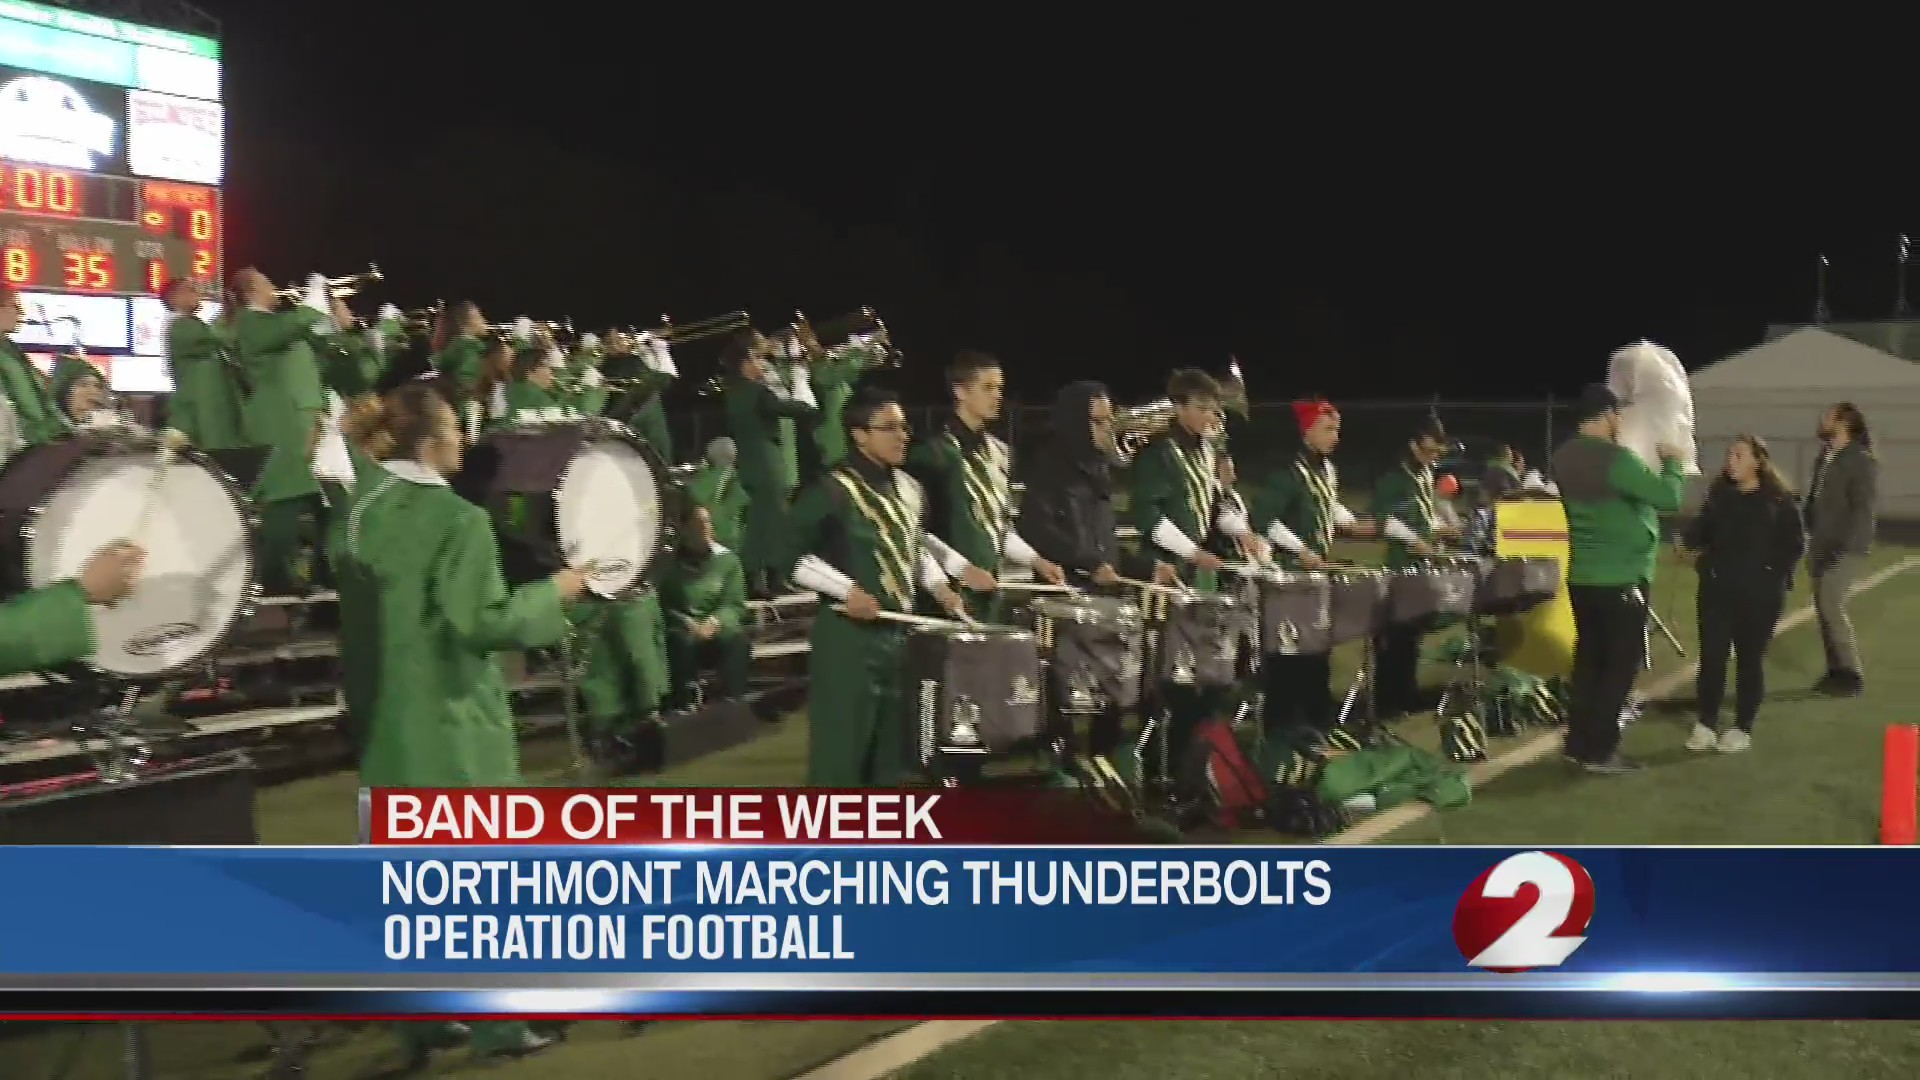 Operation Football Band of the Week 9: Northmont Marching Thunderbolts